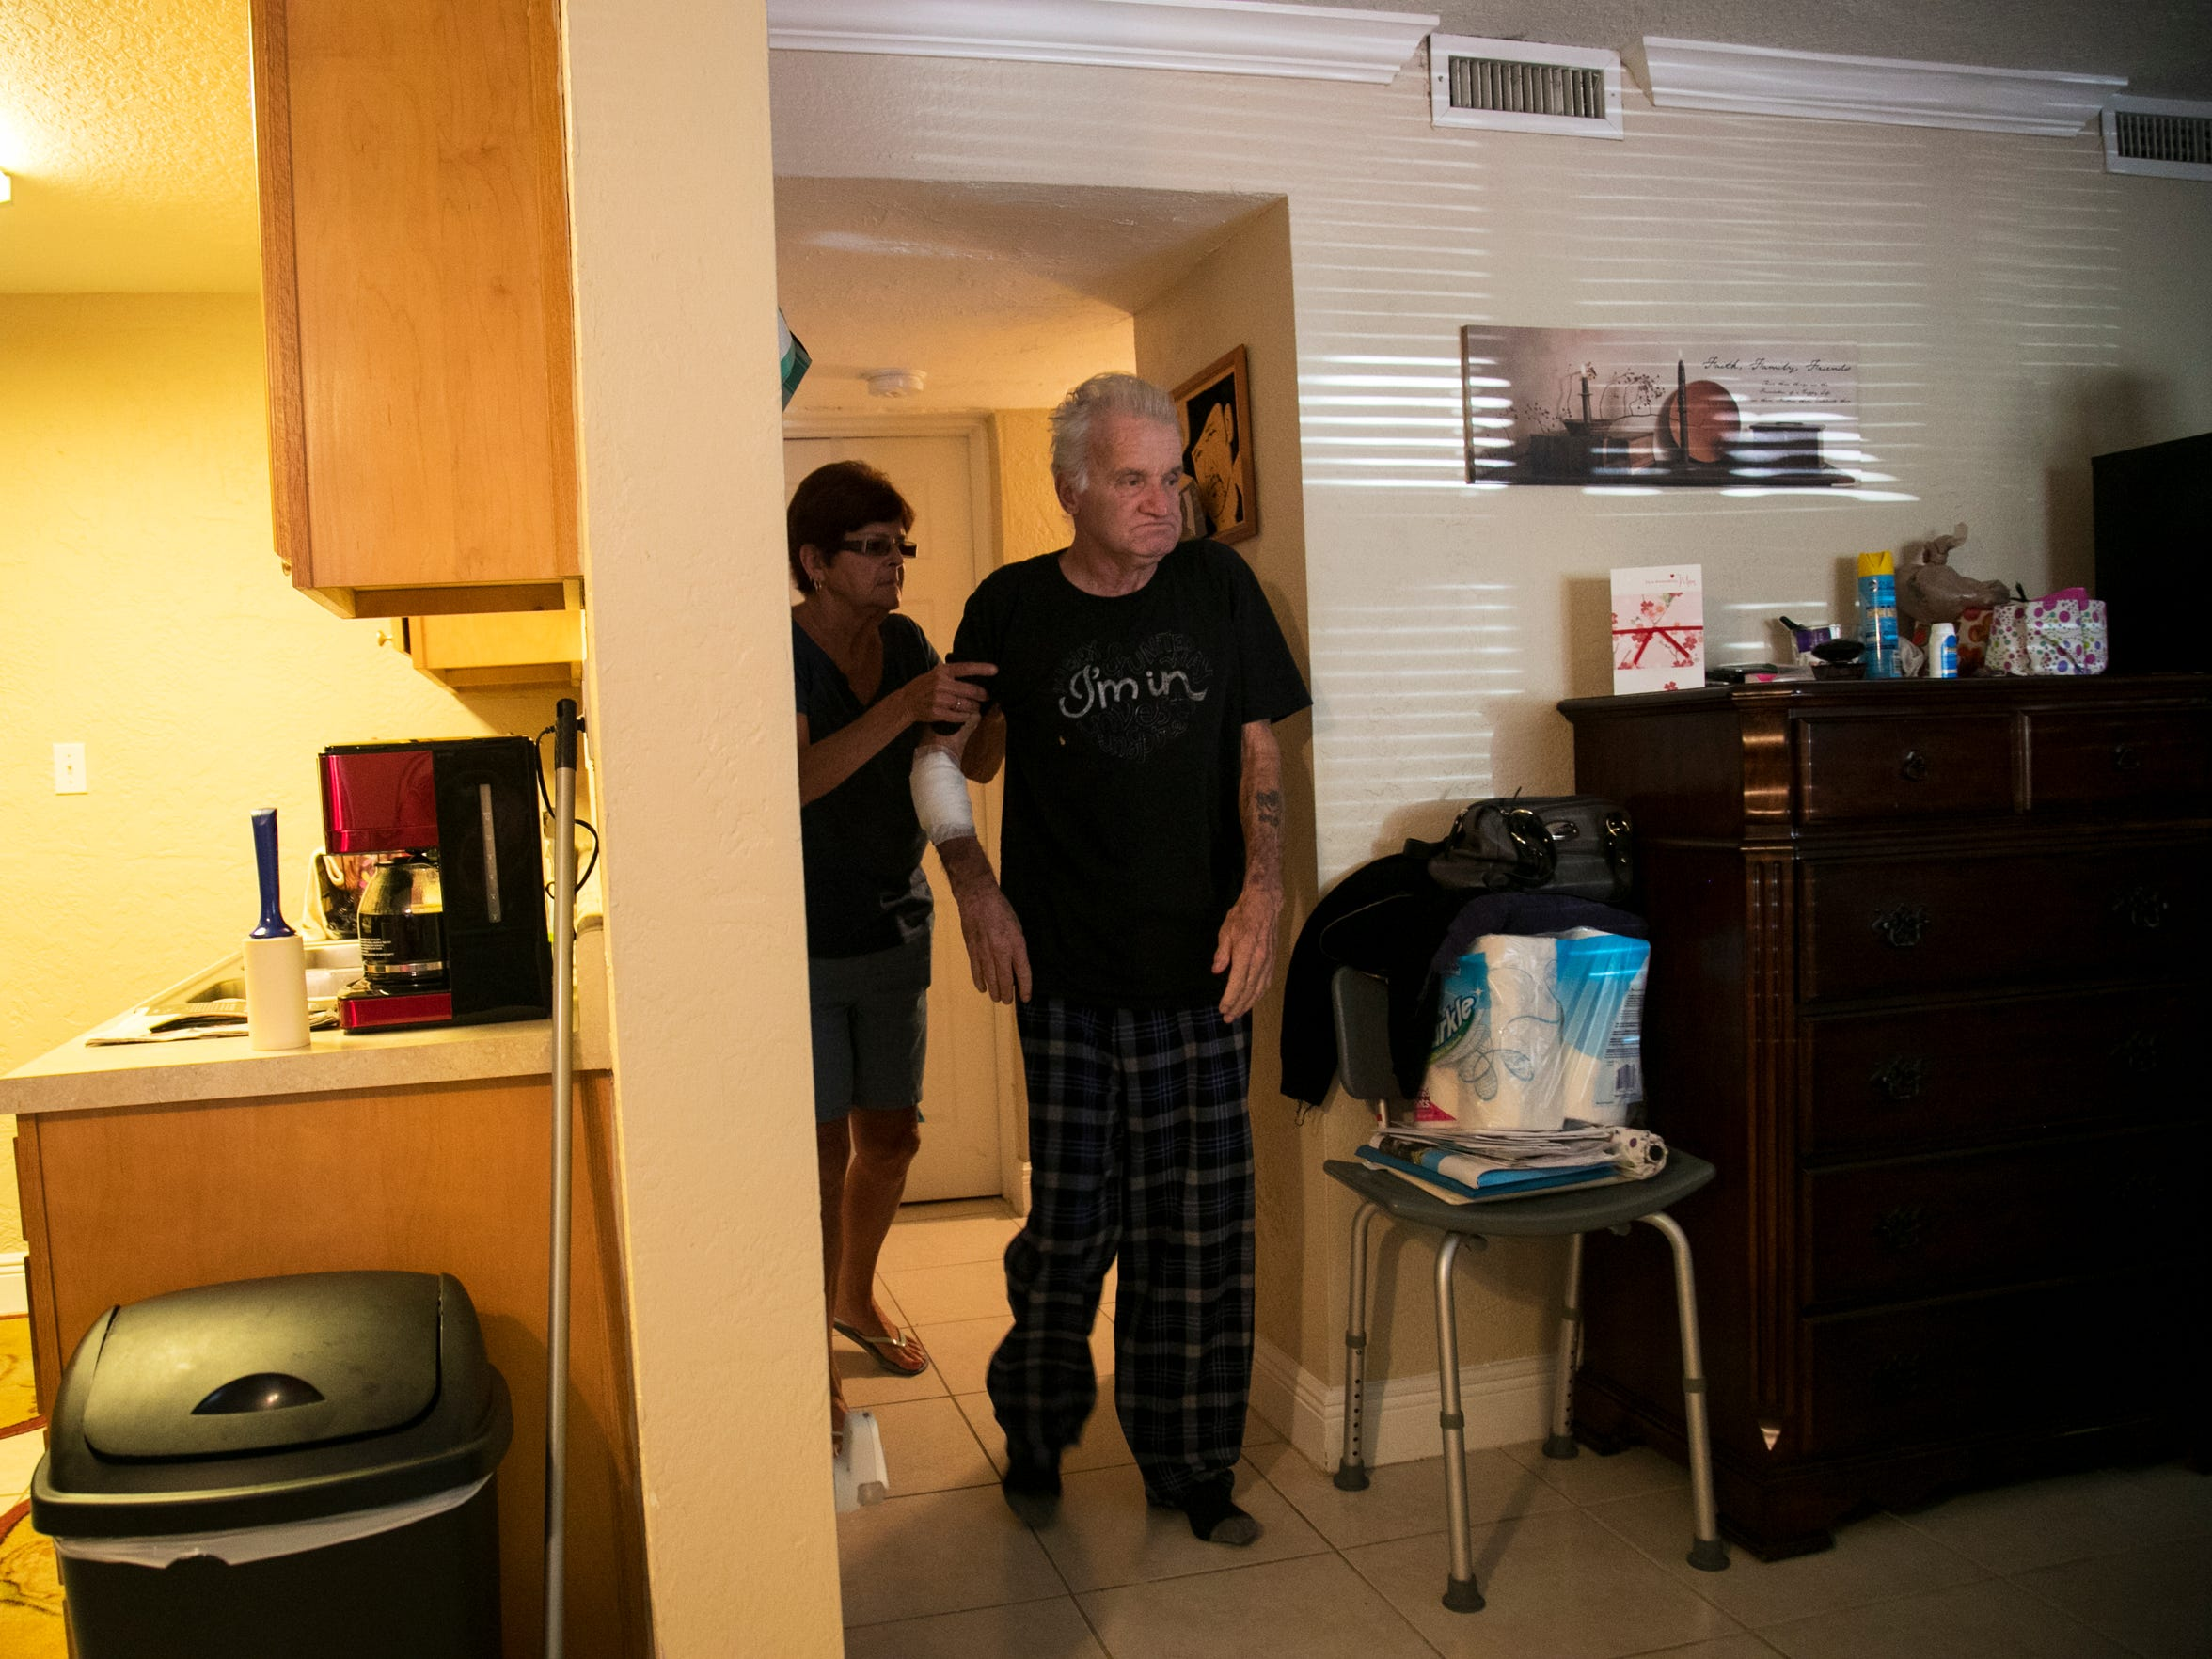 John Tagtmeir gets help from his wife Kathleen getting